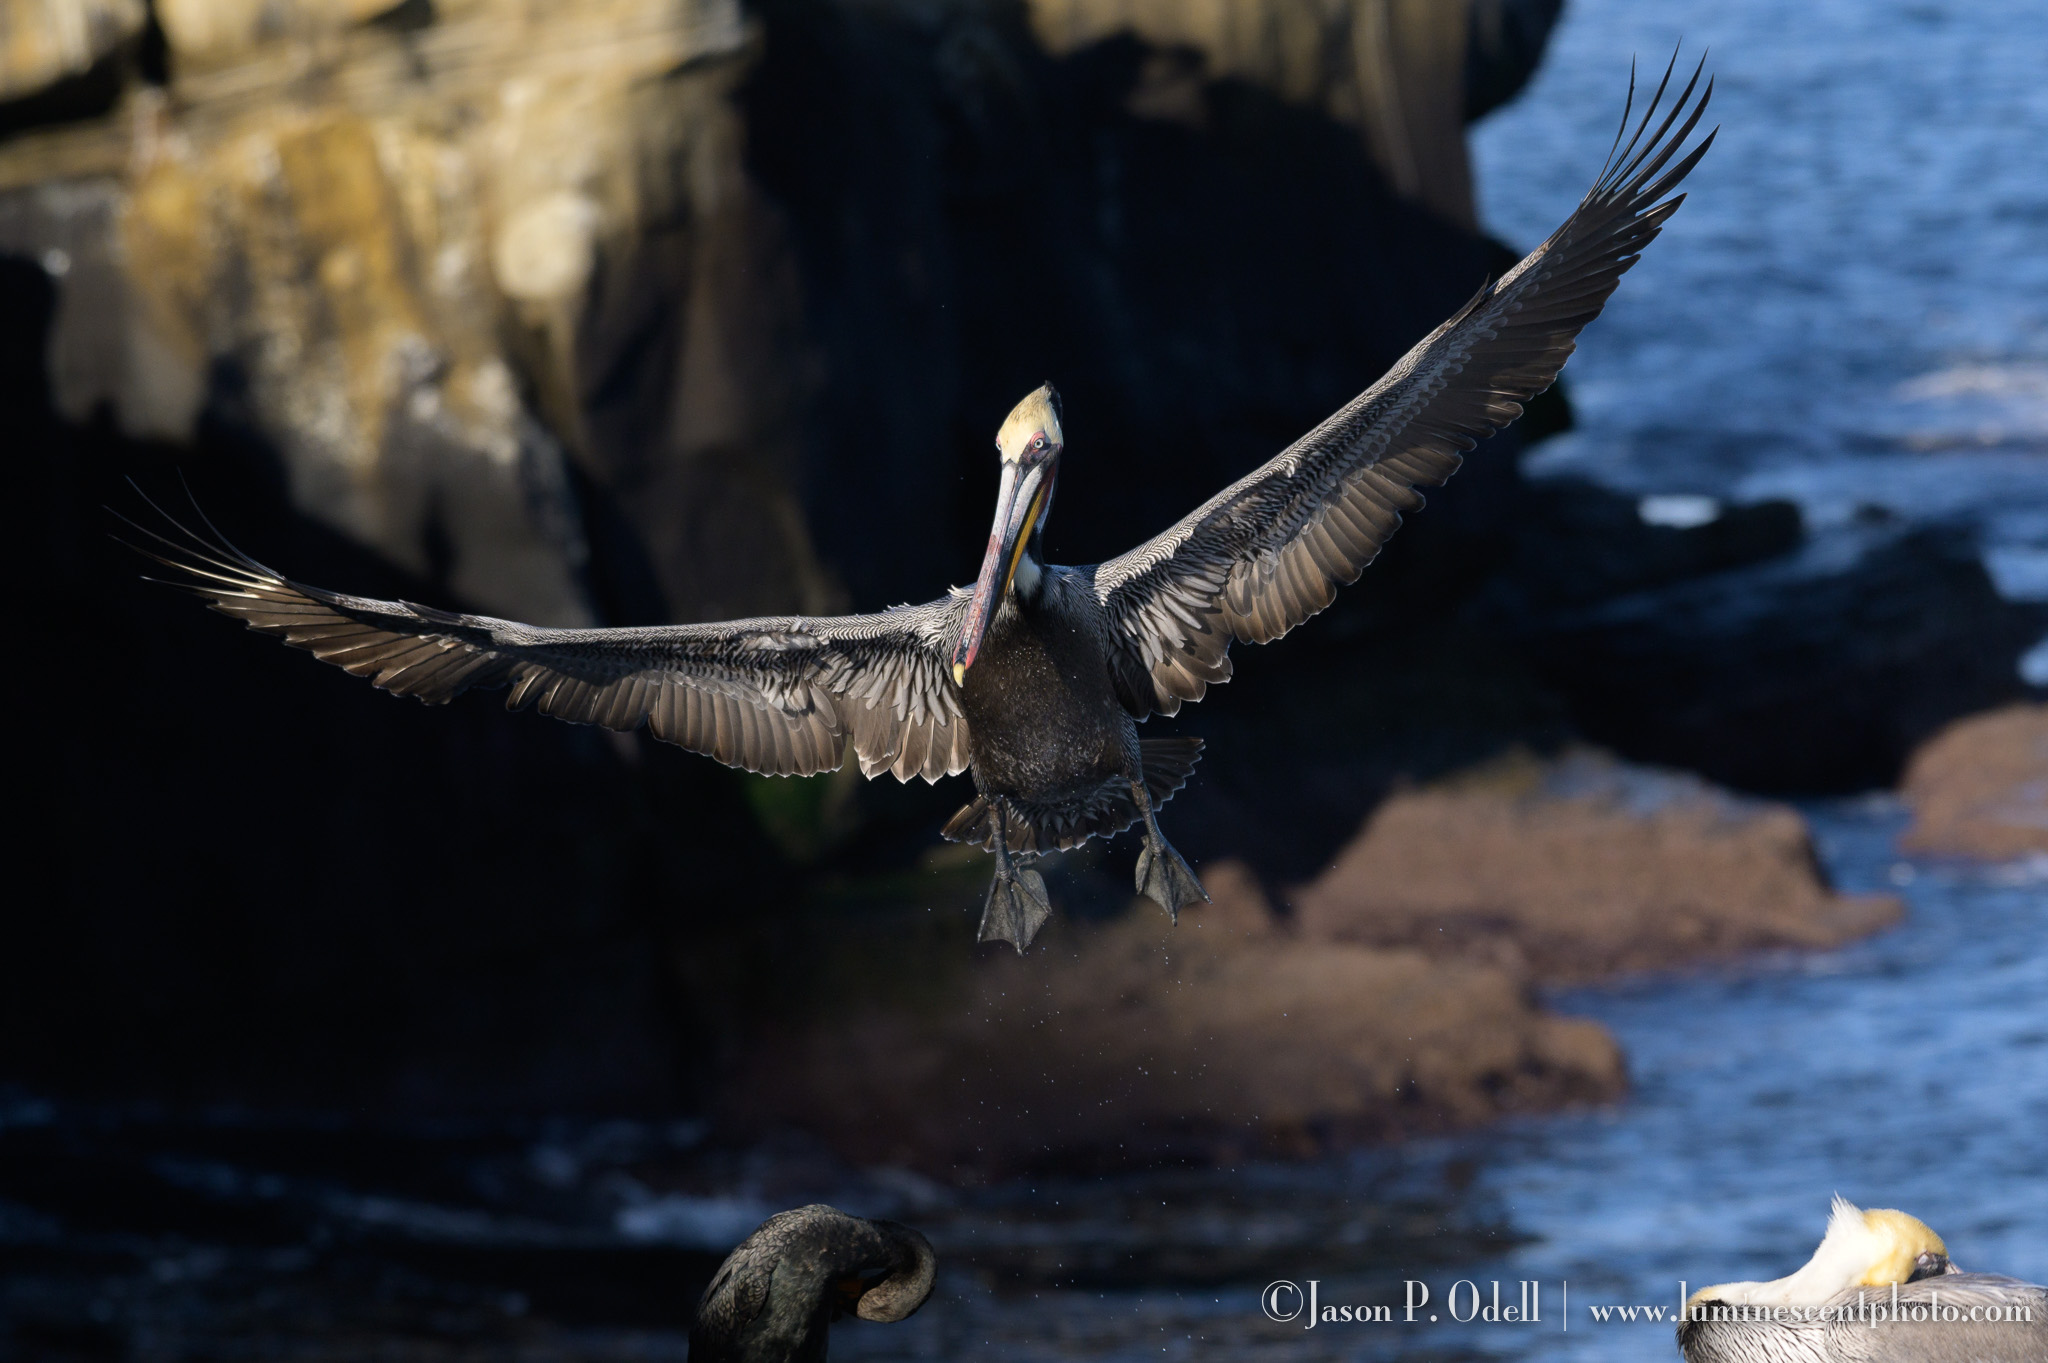 Discover the secrets to capturing great bird photos with Nikon digital cameras